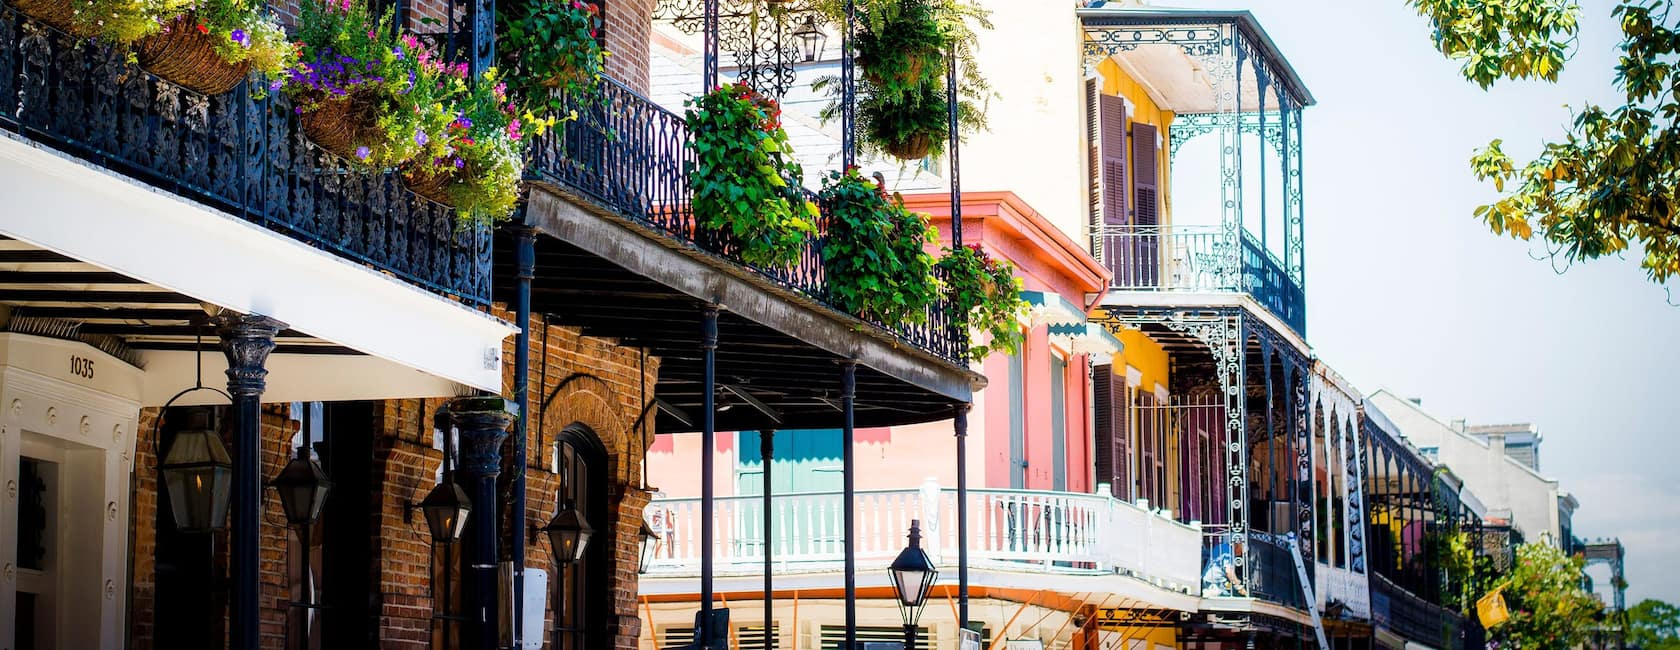 Holiday rentals in French Quarter, New Orleans